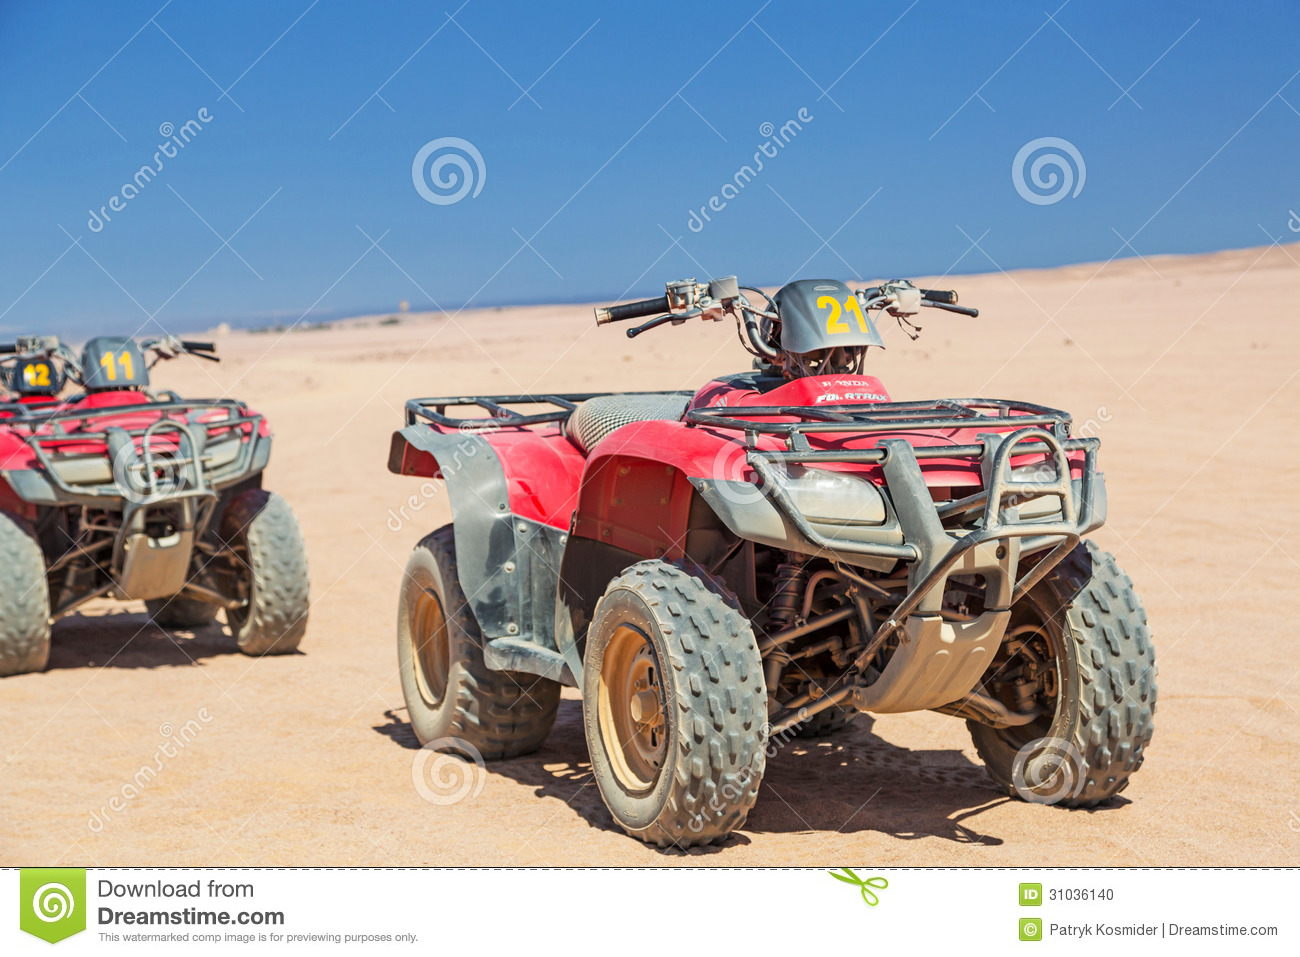 Quad trip on the desert near Hurghada